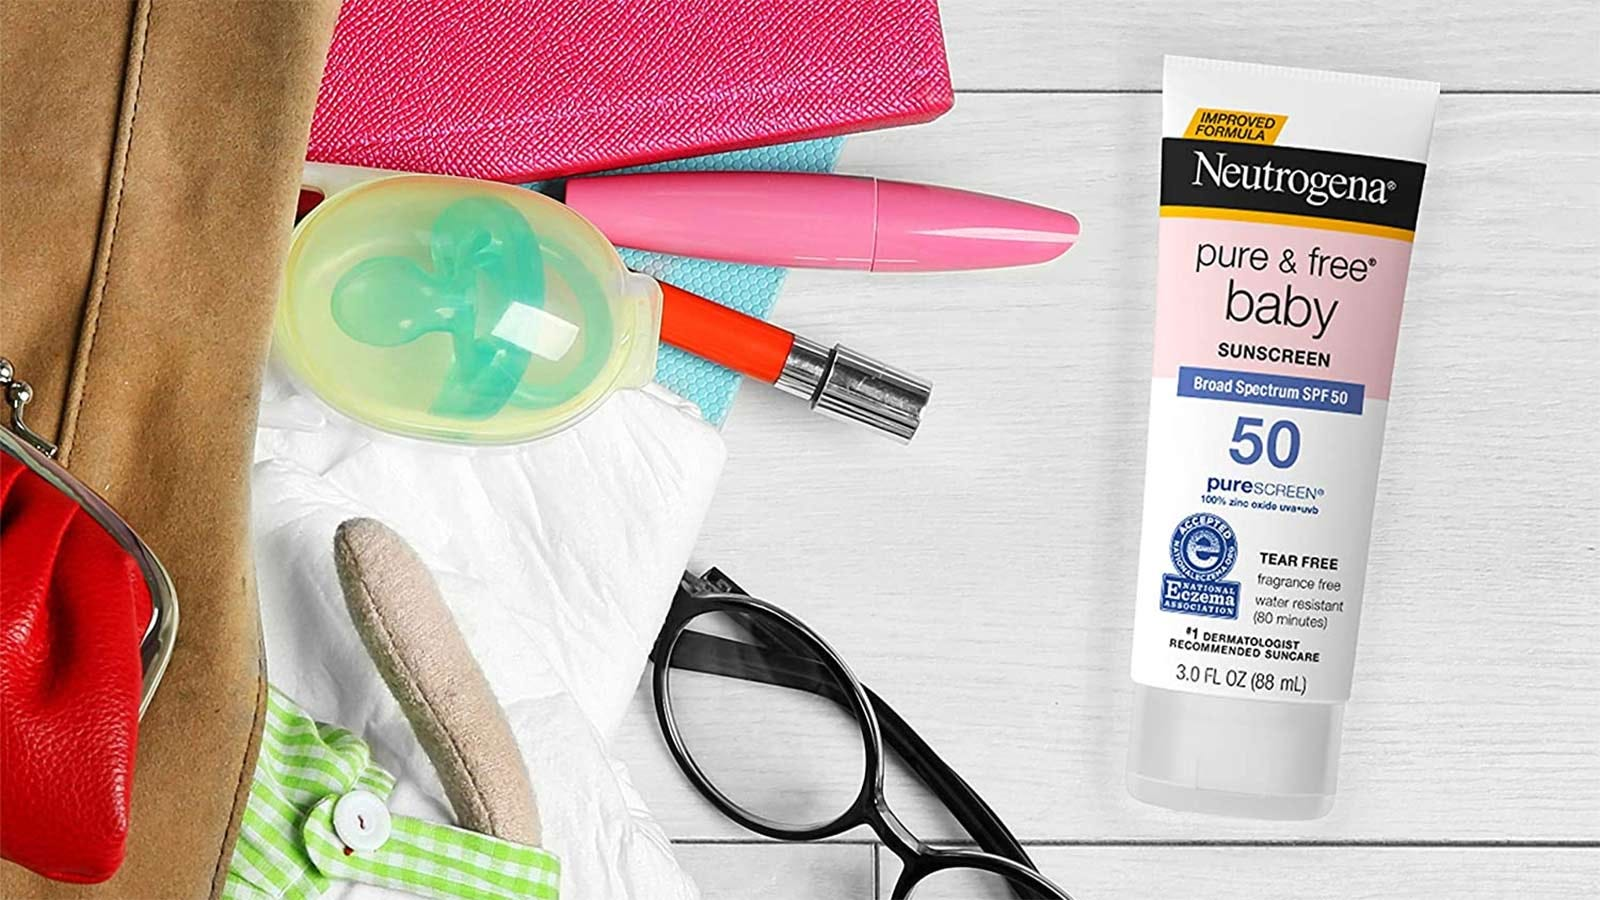 A tube of Neutrogena Pure and Free Baby sunscreen on a table next to bag filled with makeup and baby items.